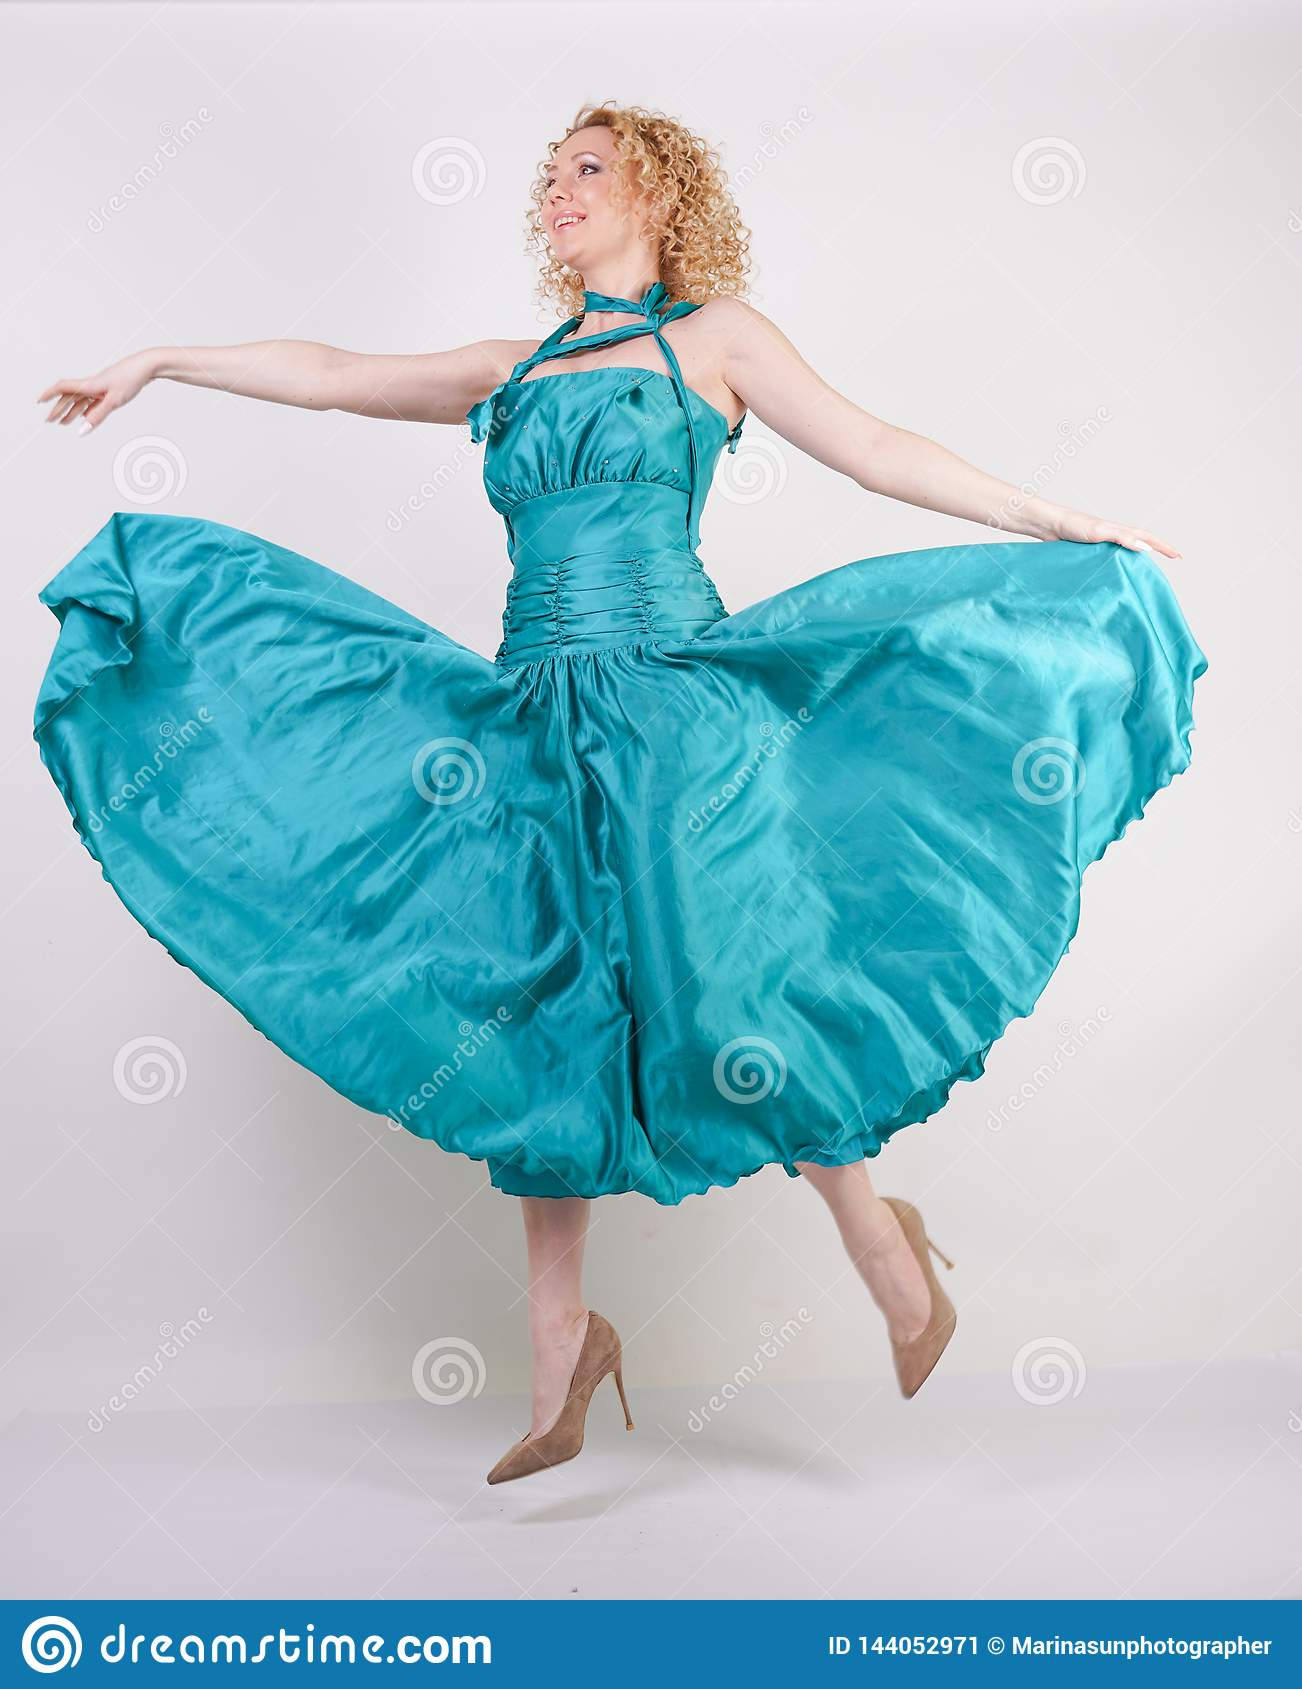 Slim airy girl in flying blue evening dress on white background in Studio